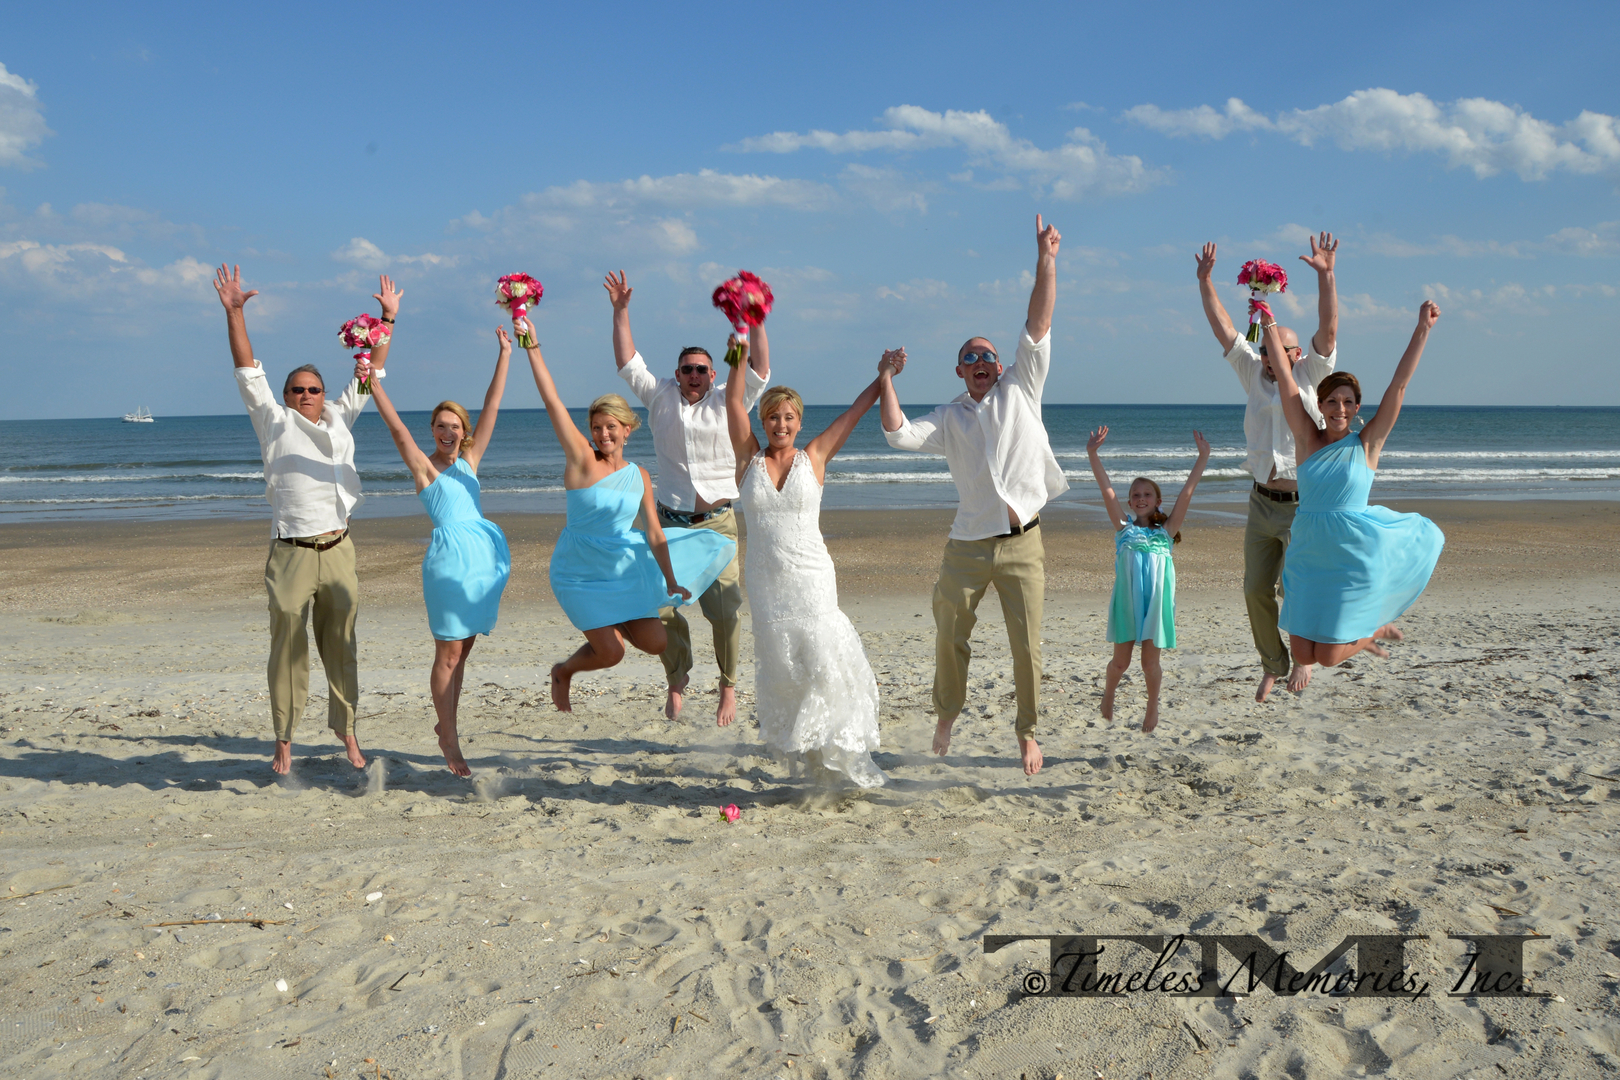 A Southern Belle Wedding Timeless Memories Inc Ocean Isle Beach Weddings Photography Planning Coordination Engagement Photo Shoot